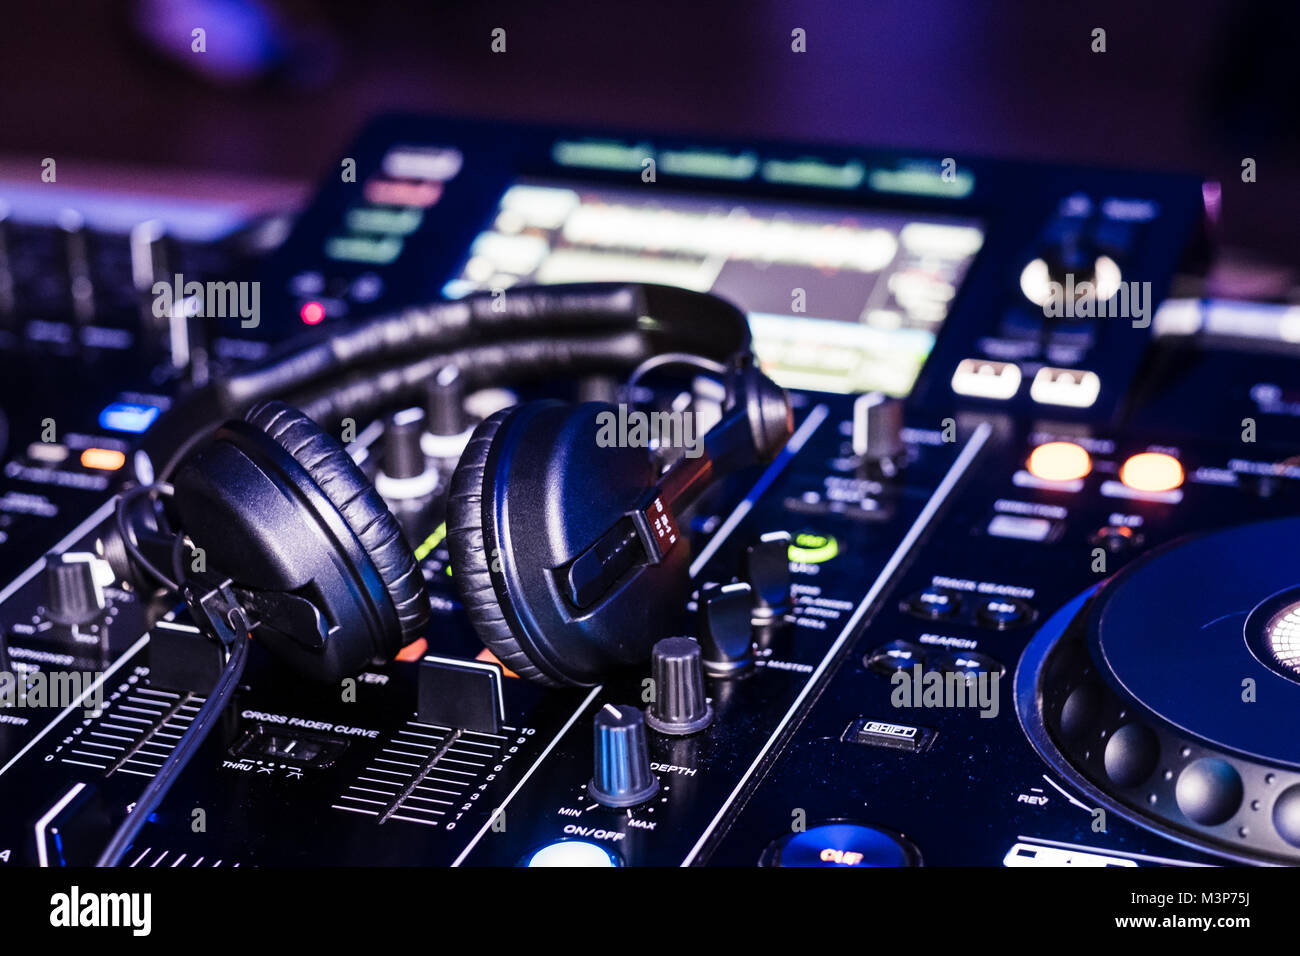 Pioneer RDJ-RX DJ deck during a gig.  February 2018 - Stock Image